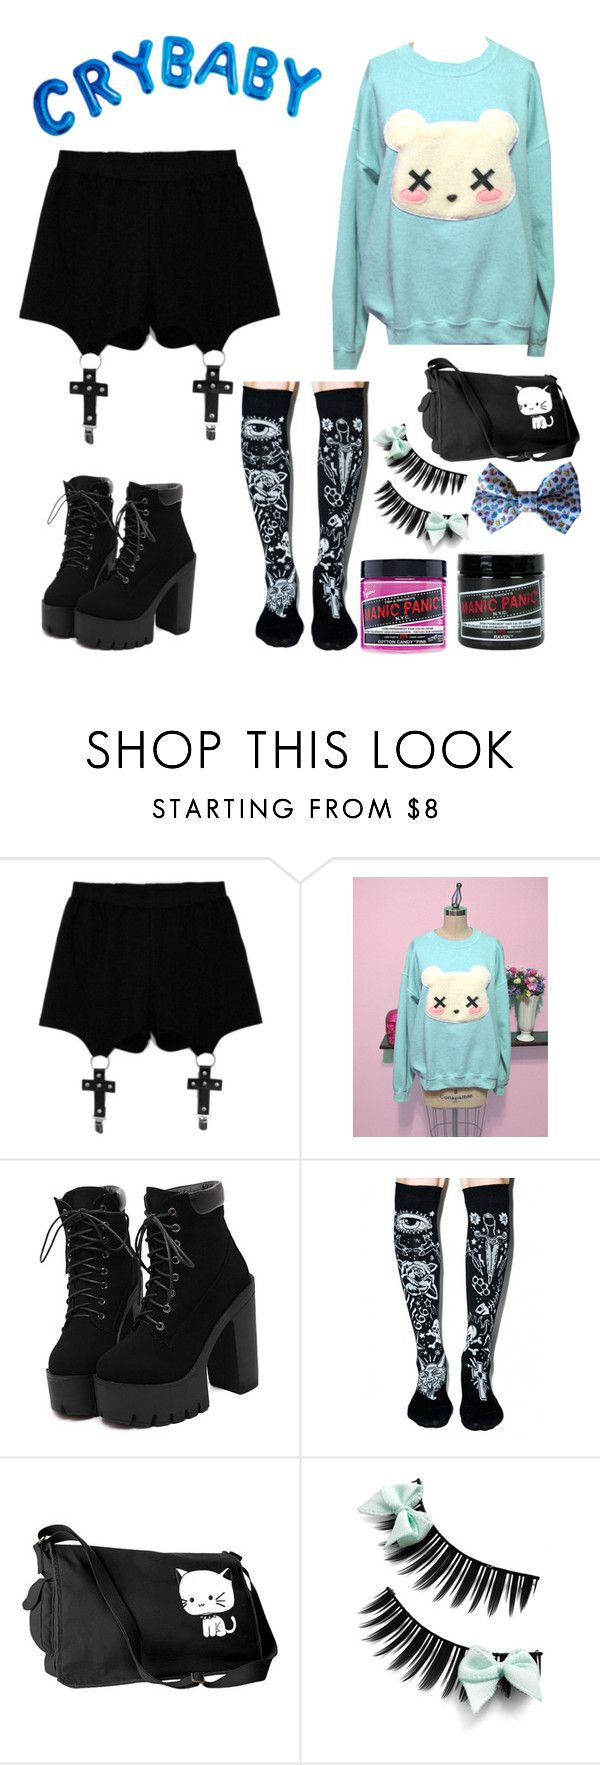 """Pastel Melanie Martinez inspired"" by danandphillove ❤ liked on Polyvore featuring Chicnova Fashion, Too Fast, Manic Panic, women's clothing, women's fashion, women, female, woman, misses and juniors"